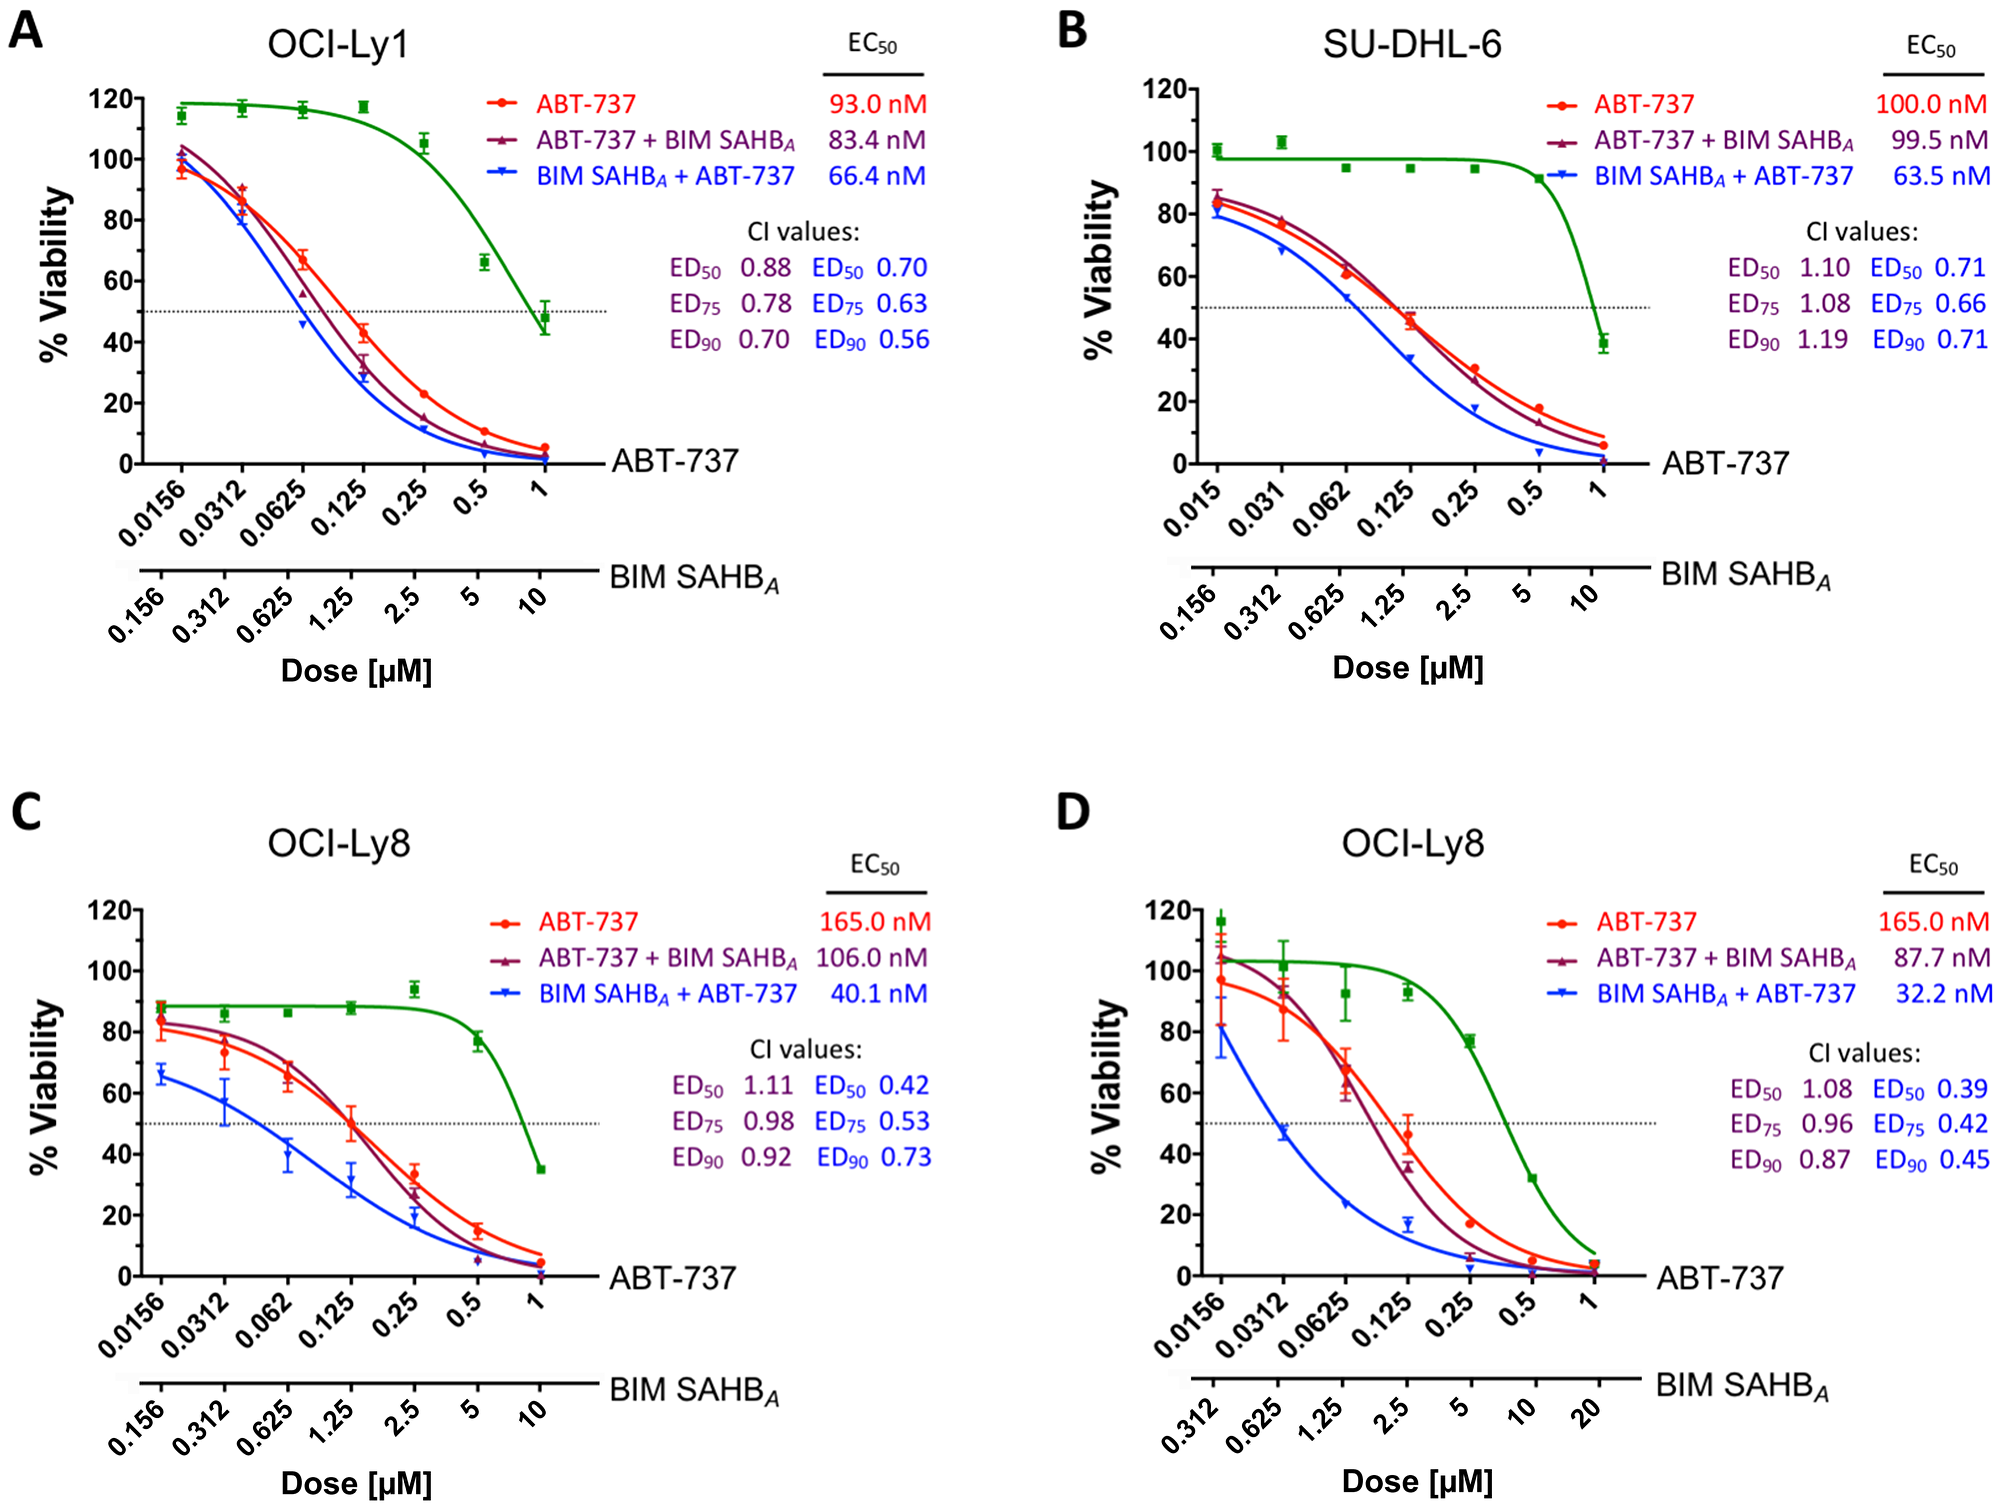 Treatment with BIM SAHBA increases DLBCL cell death when given before but not following treatment with ABT-737.